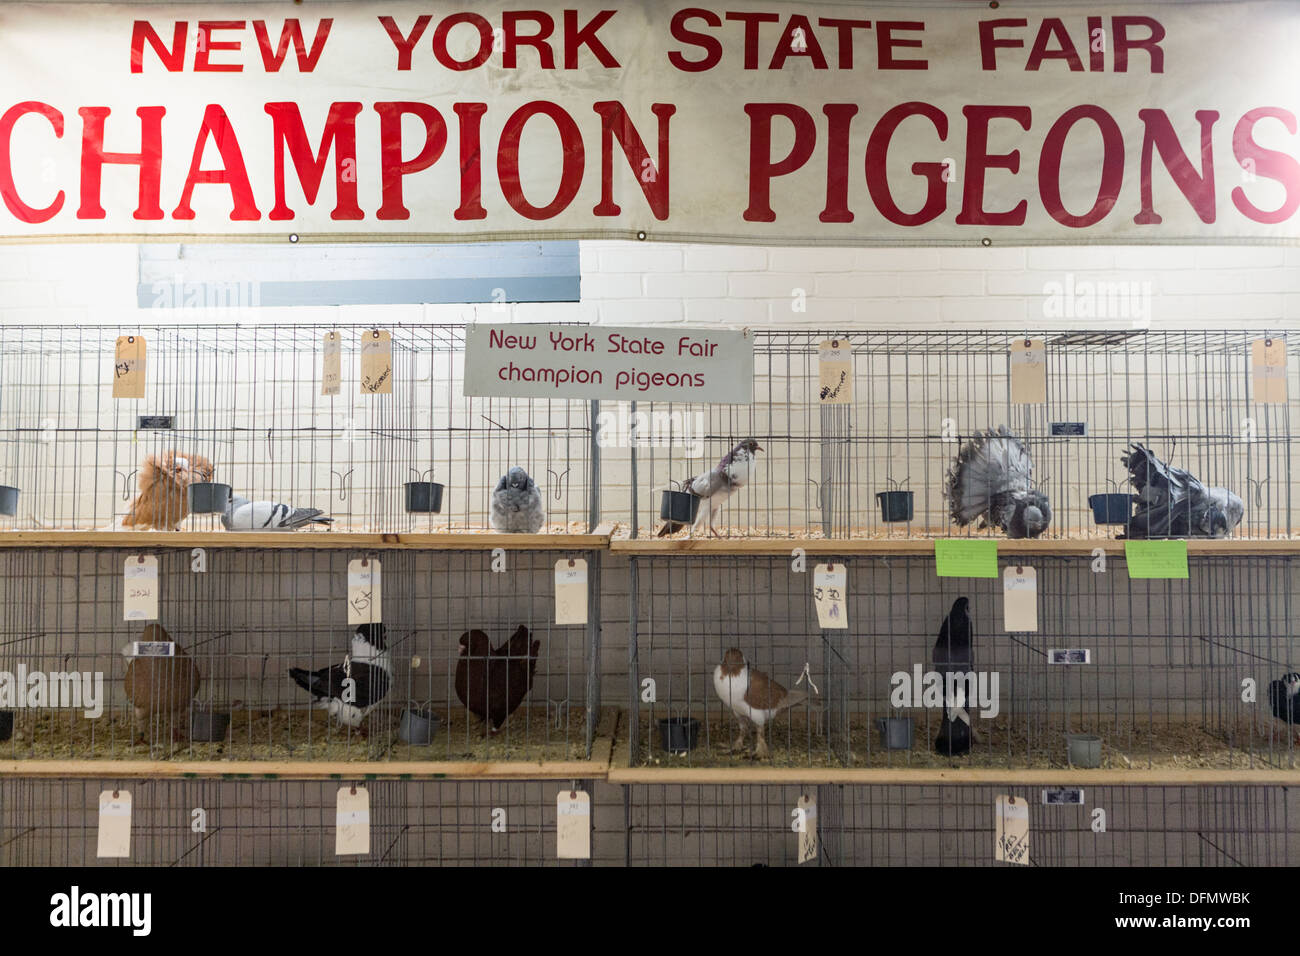 Champion pigeons, Great New York State Fair. - Stock Image